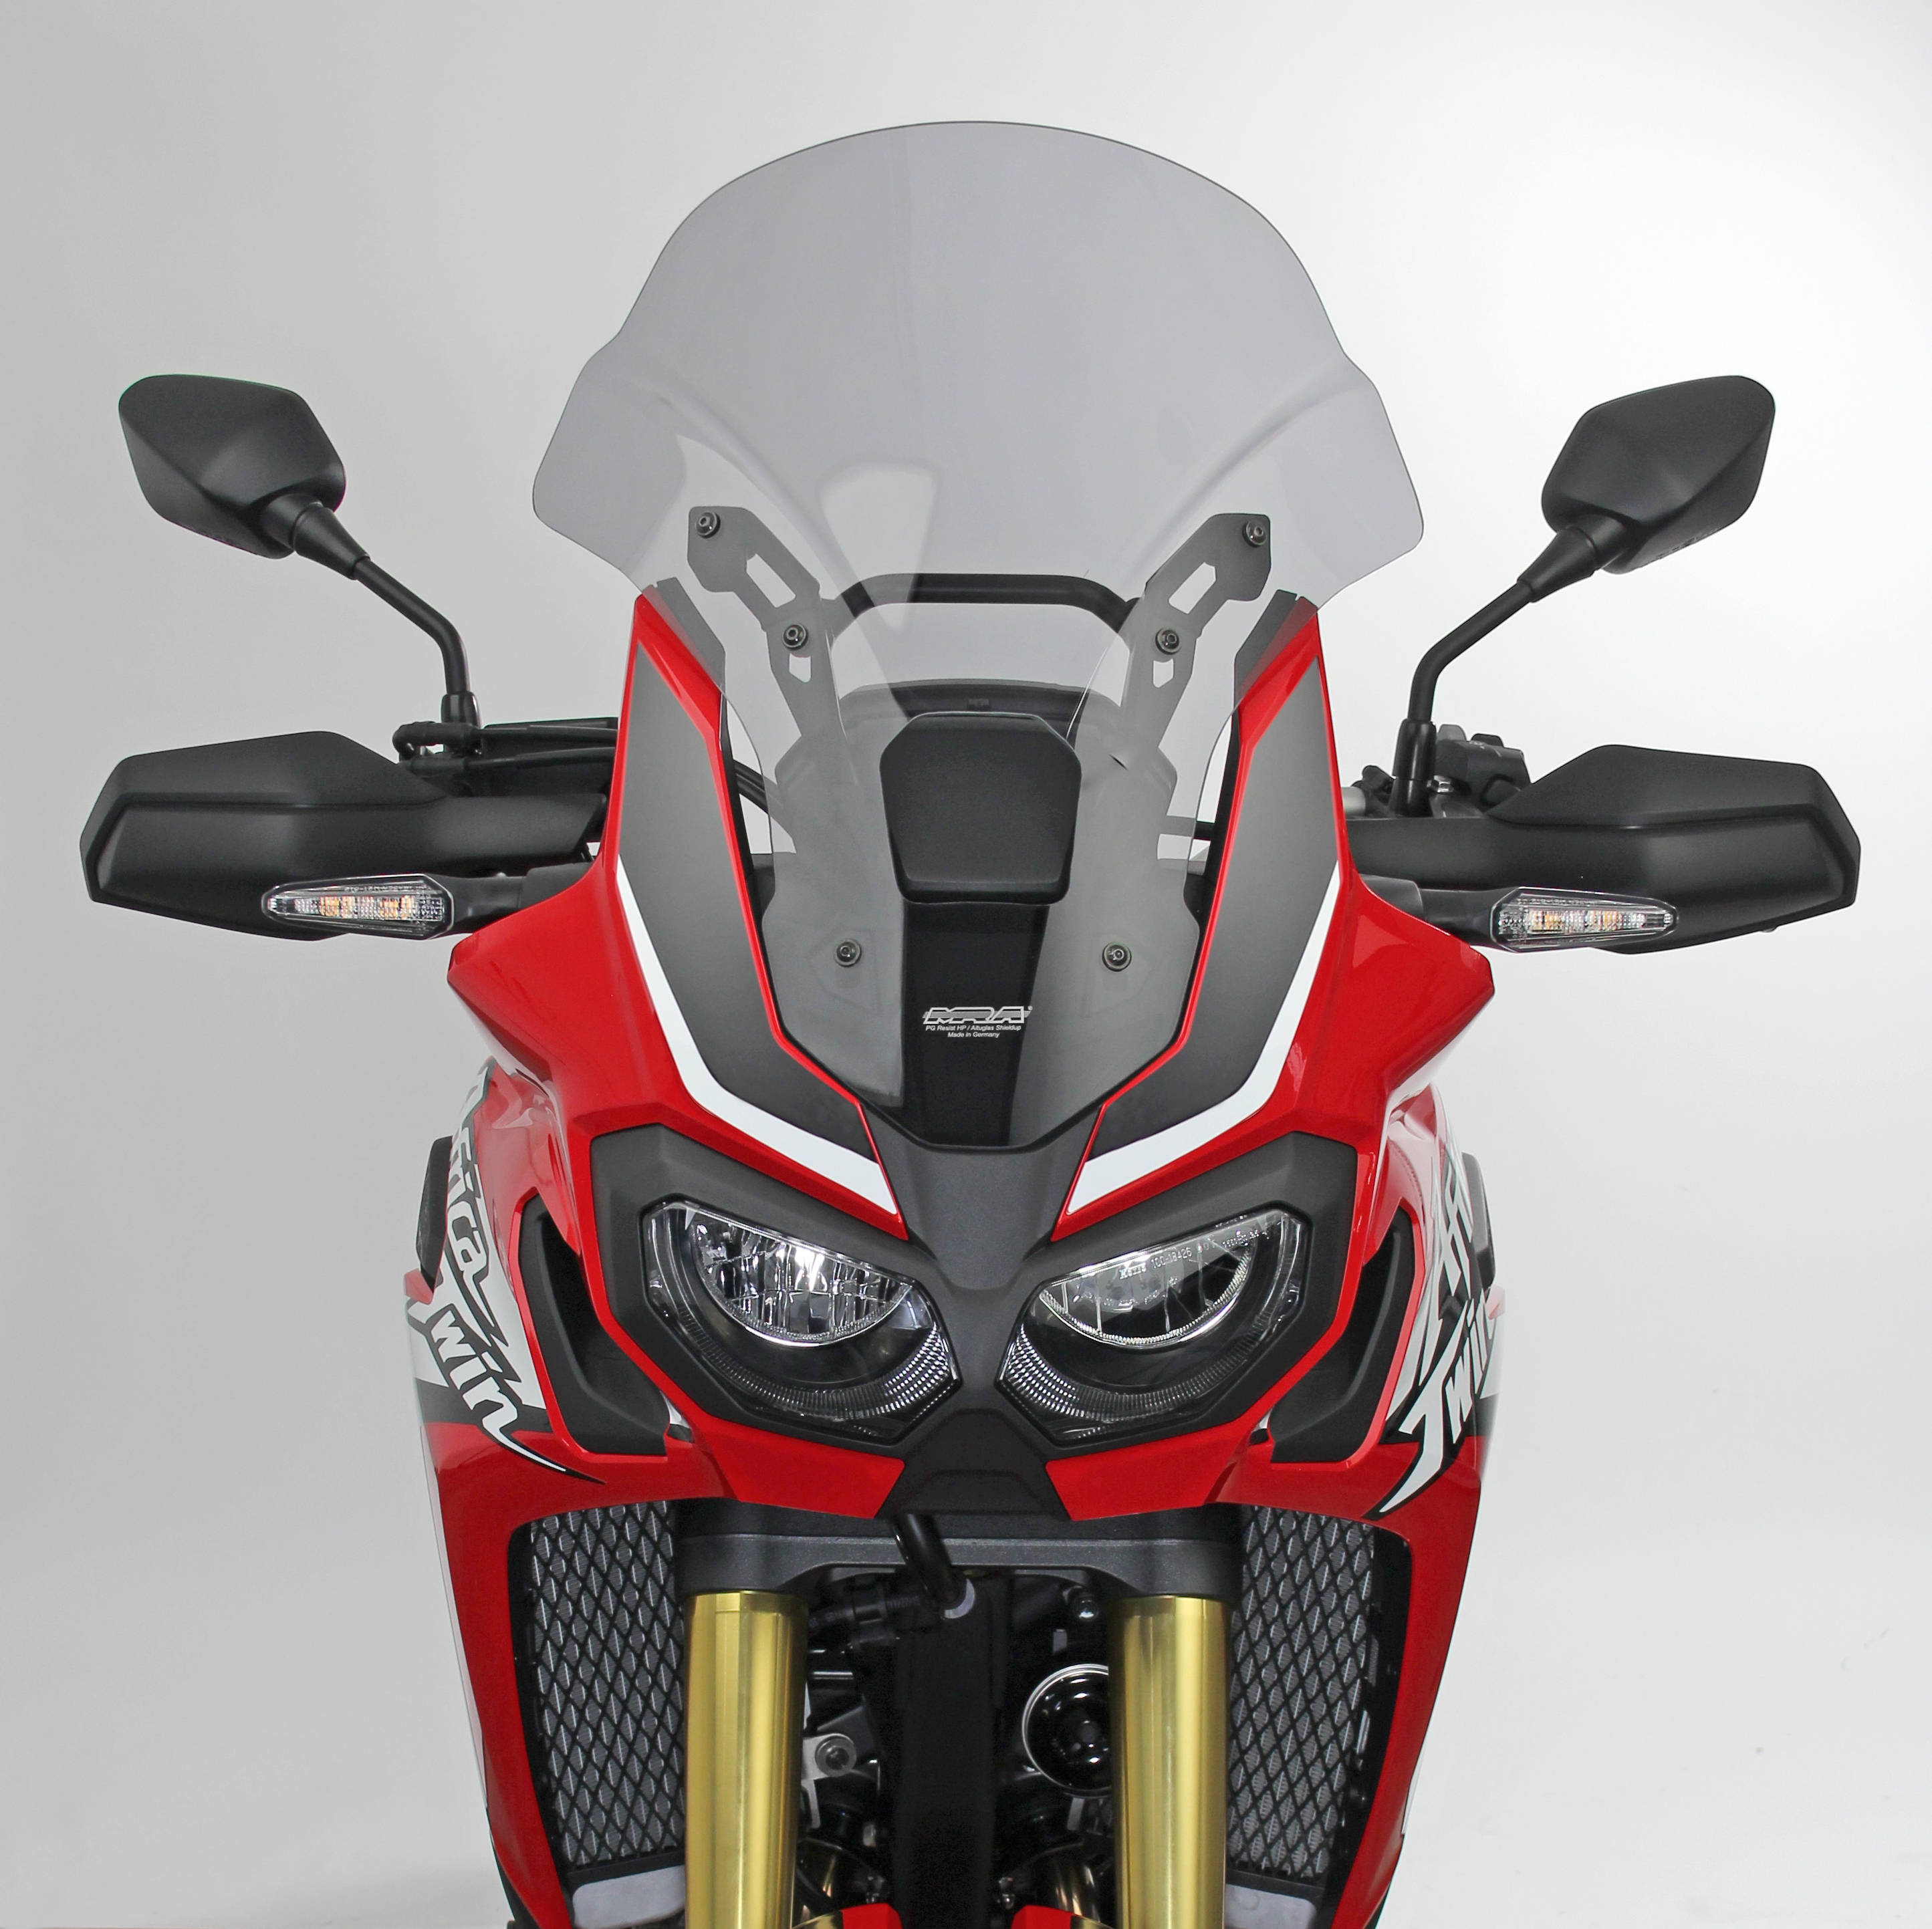 crf 1000 l africa twin touring windshield tm 2016. Black Bedroom Furniture Sets. Home Design Ideas